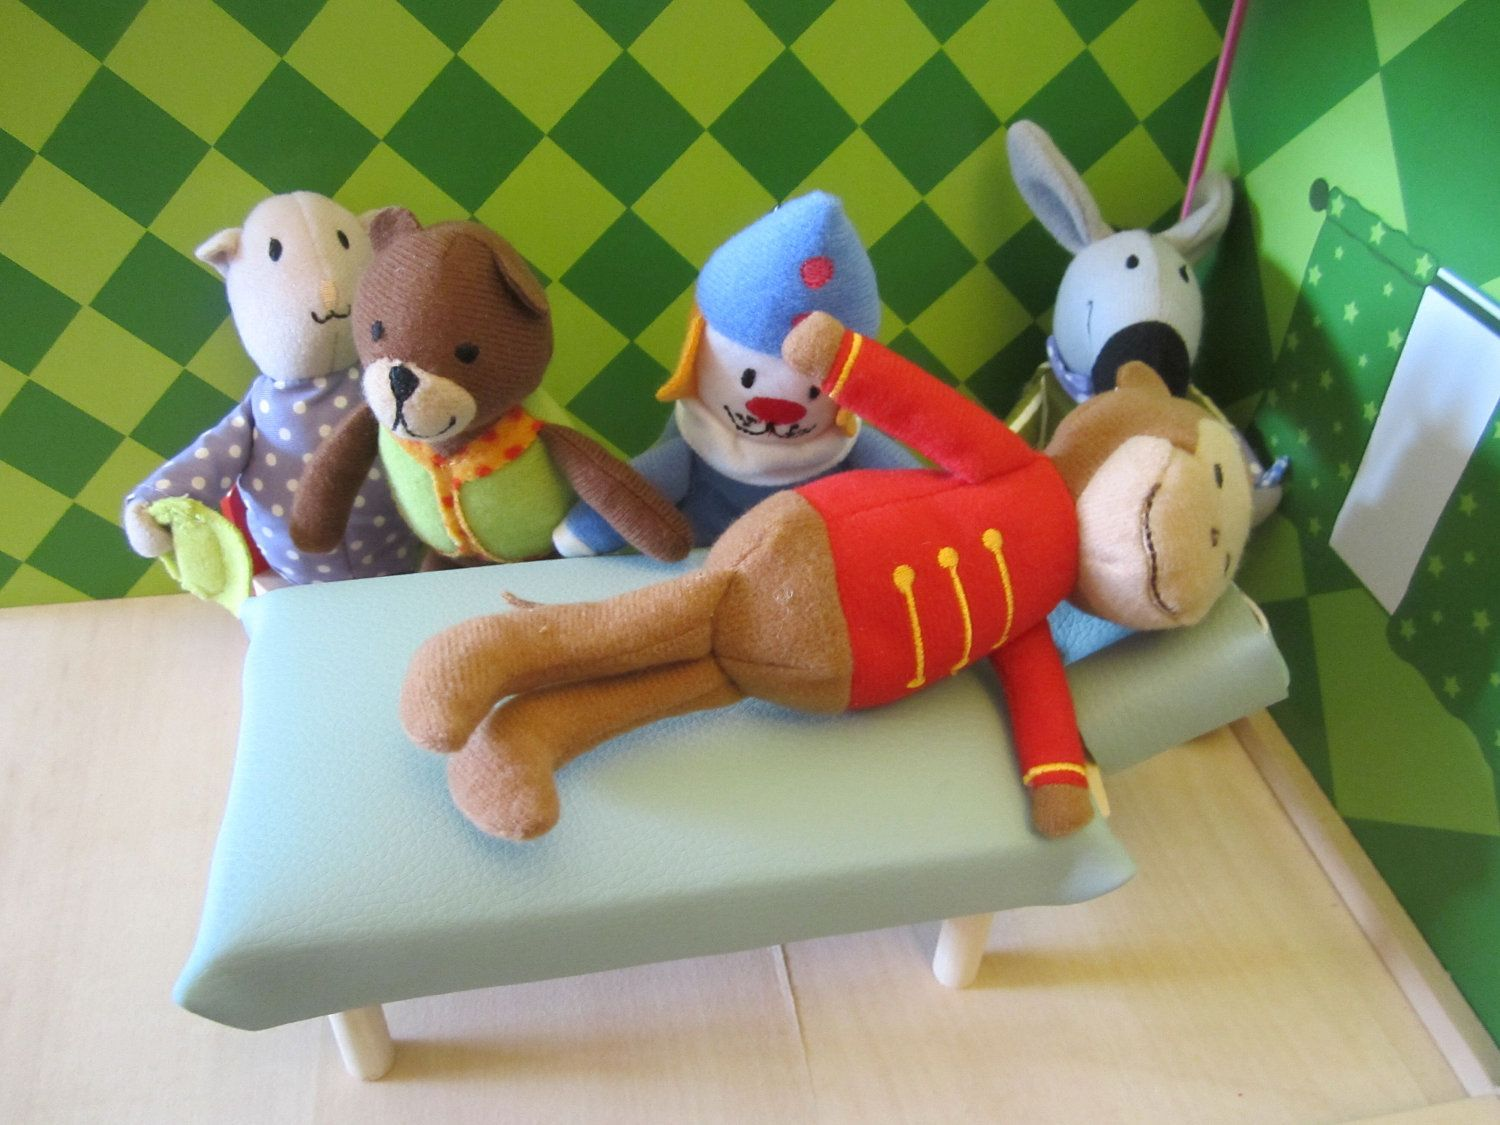 Chiro playset table and 3 animals 6300 via etsy